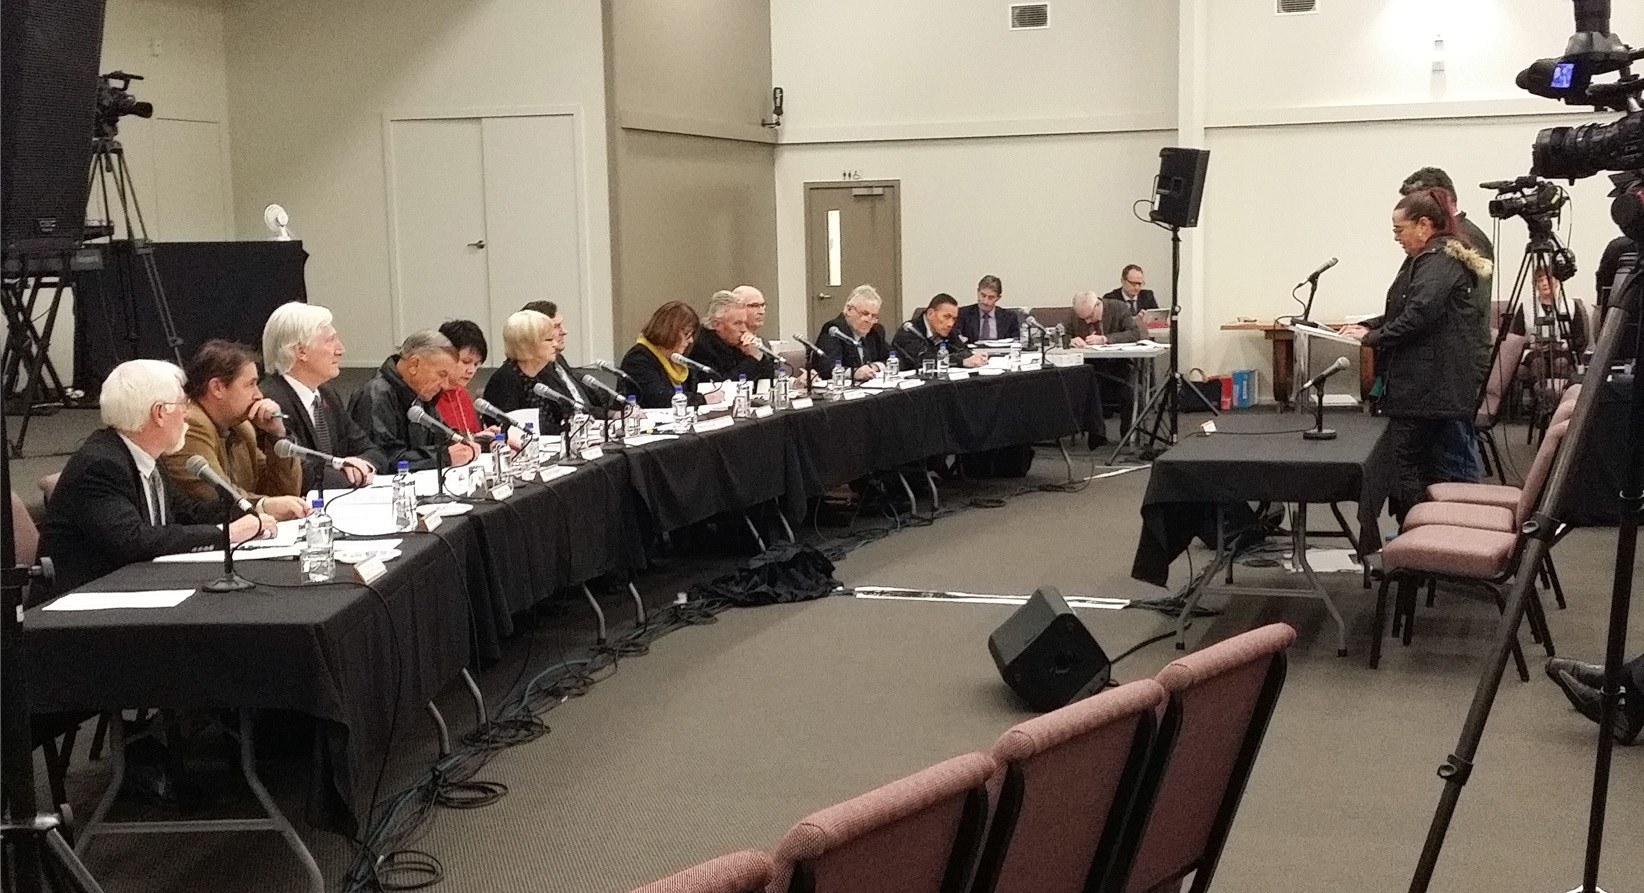 NPDC_Hearings_at_Waitara.jpg